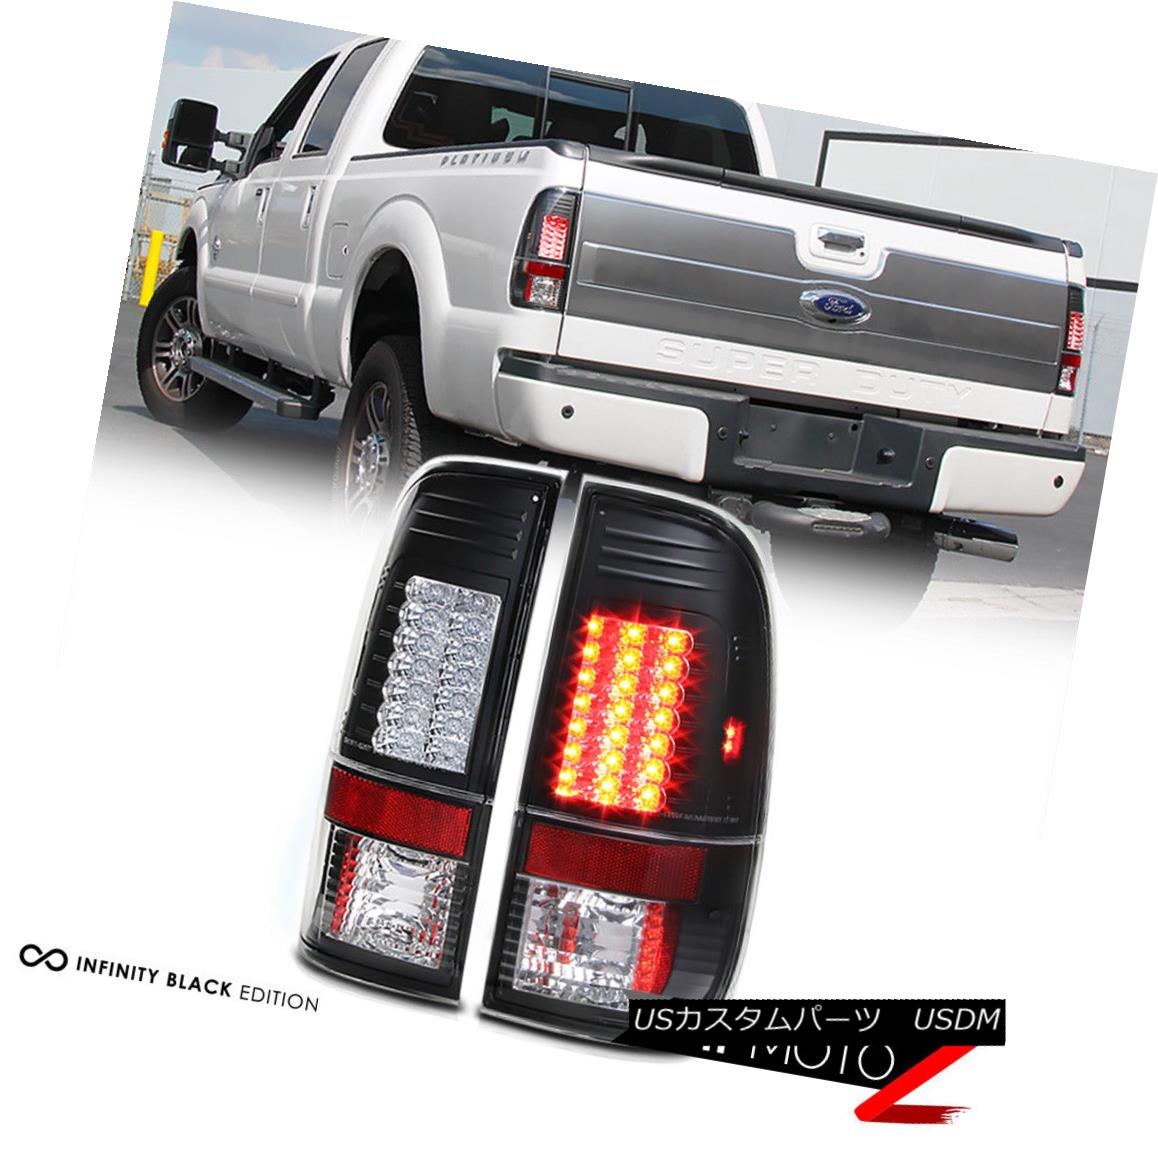 テールライト 2008-2016 Ford 250 350 450 SuperDuty *V2 LED* Black Tail Lights Rear Brake Pair 2008-2016 Ford 250 350 450 SuperDuty * V2 LED *ブラックテールライトリアブレーキペア